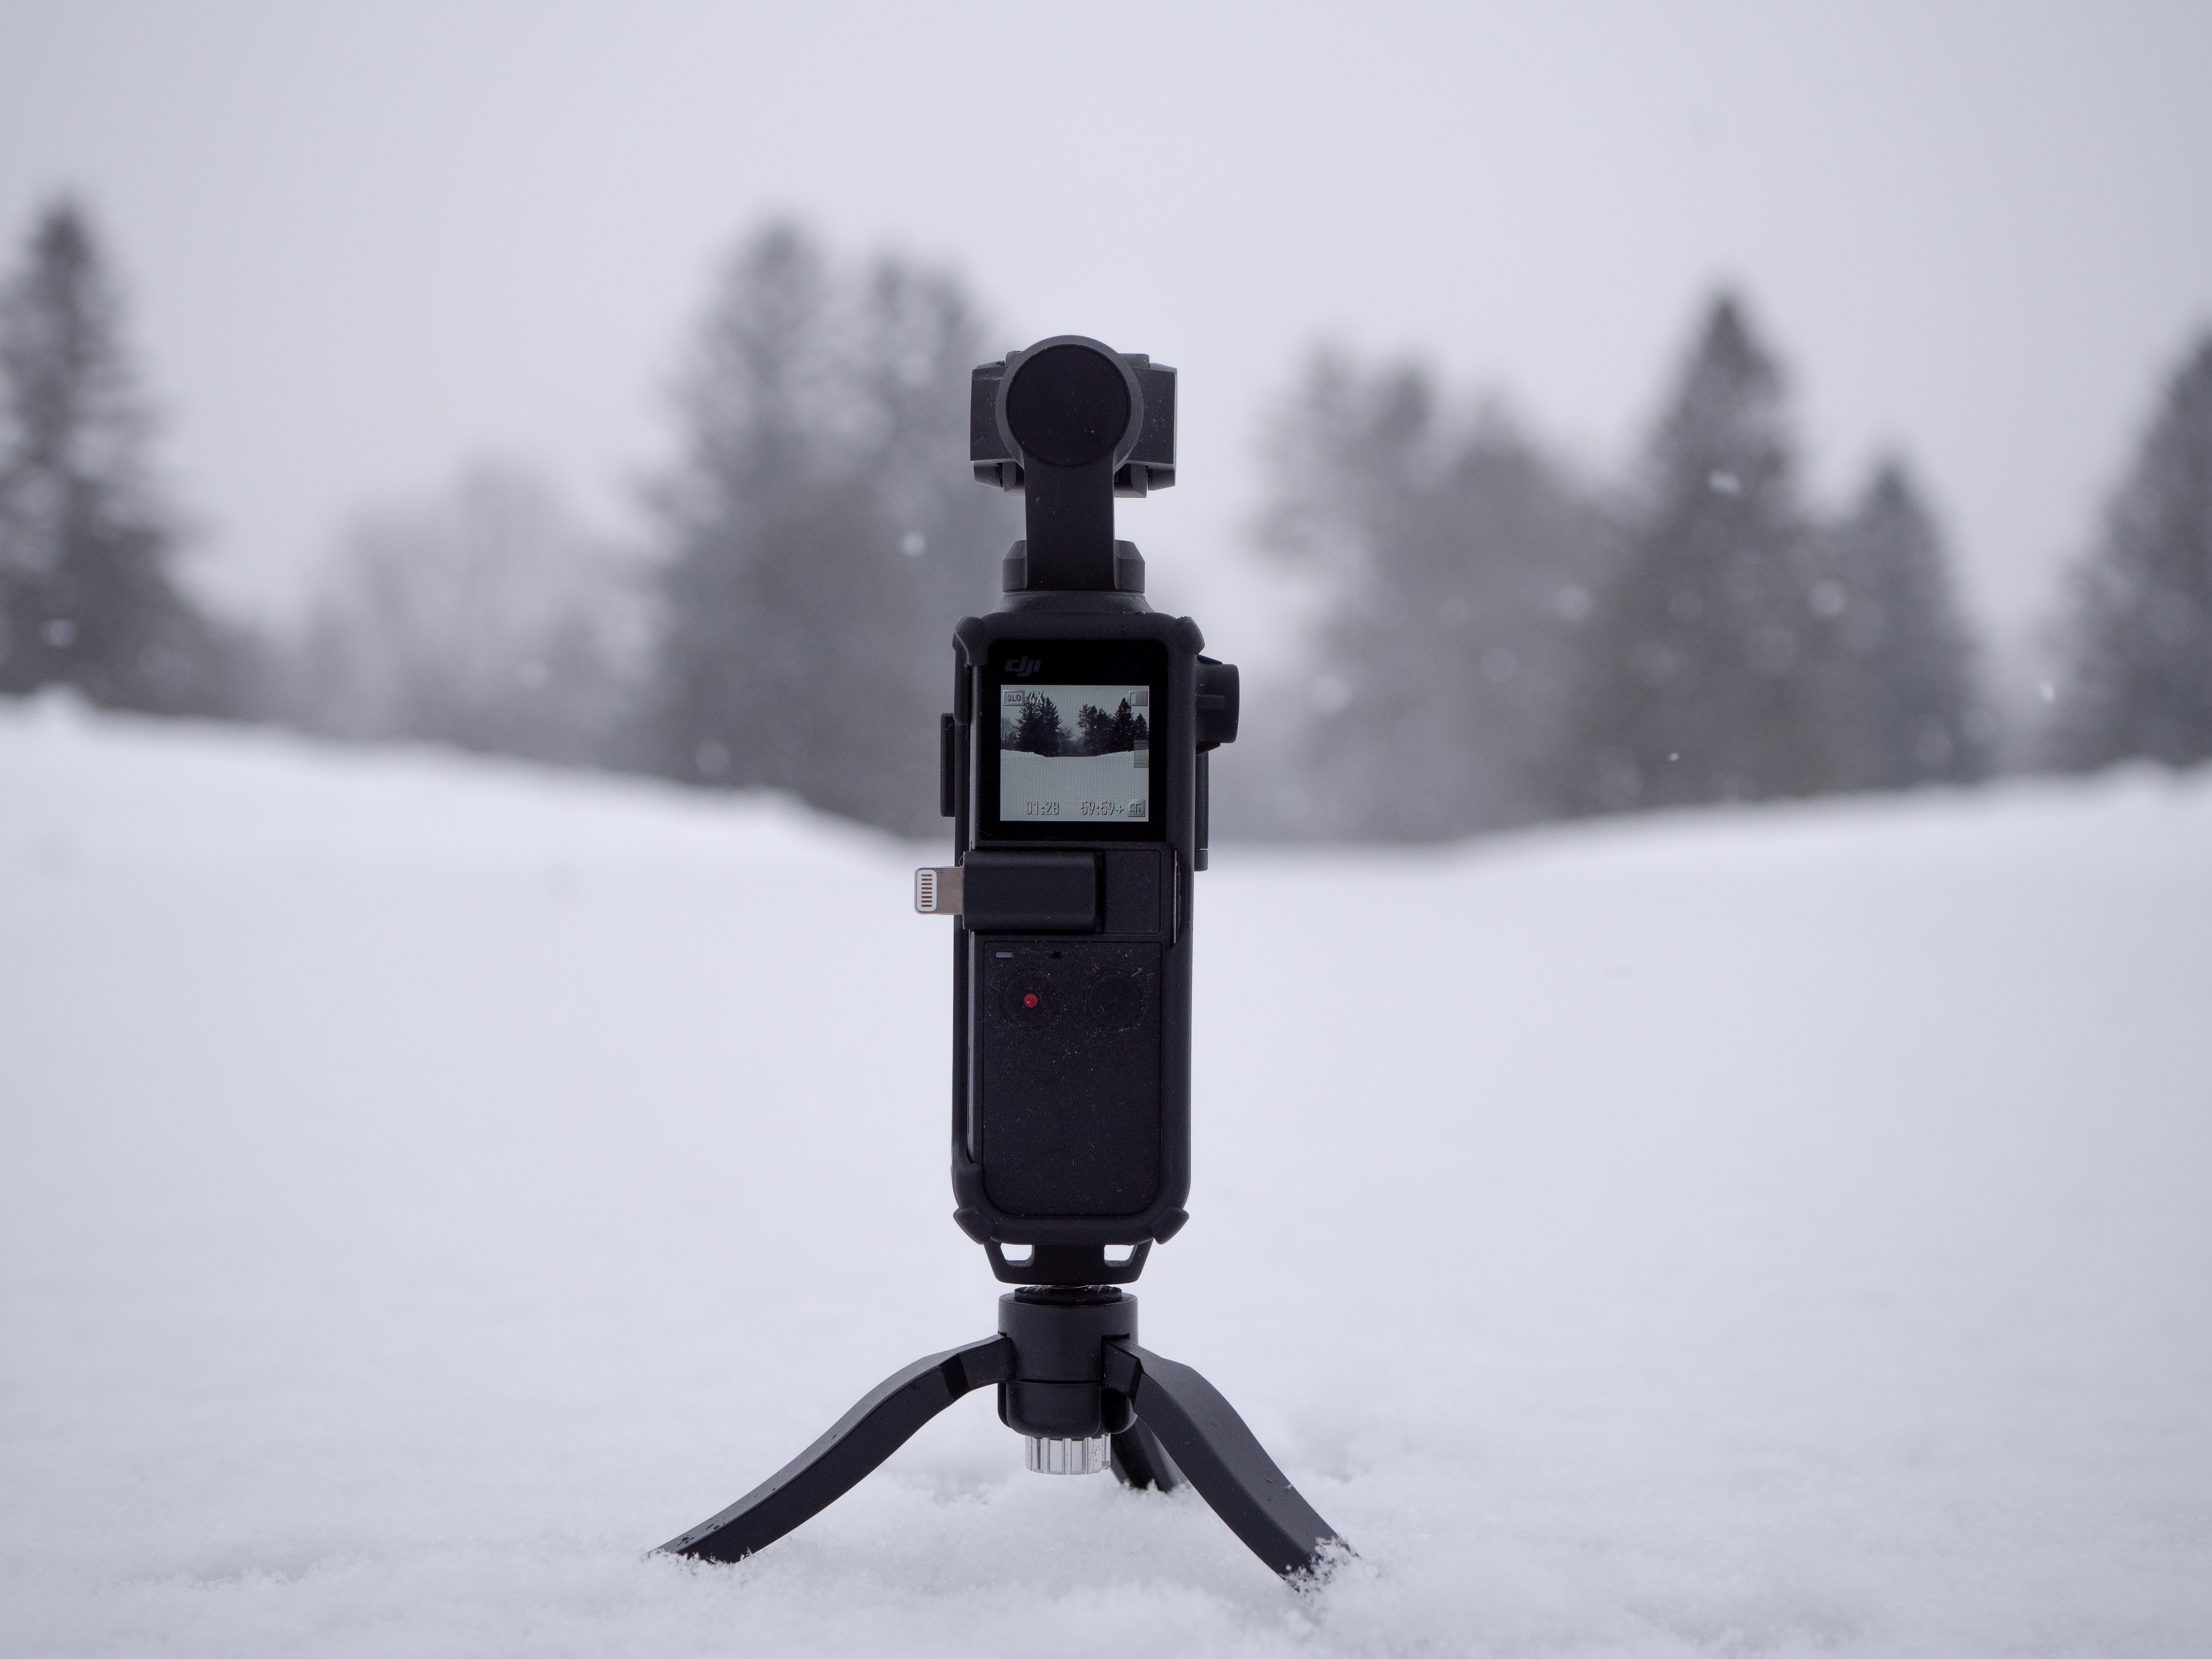 black camera with stand on snow field